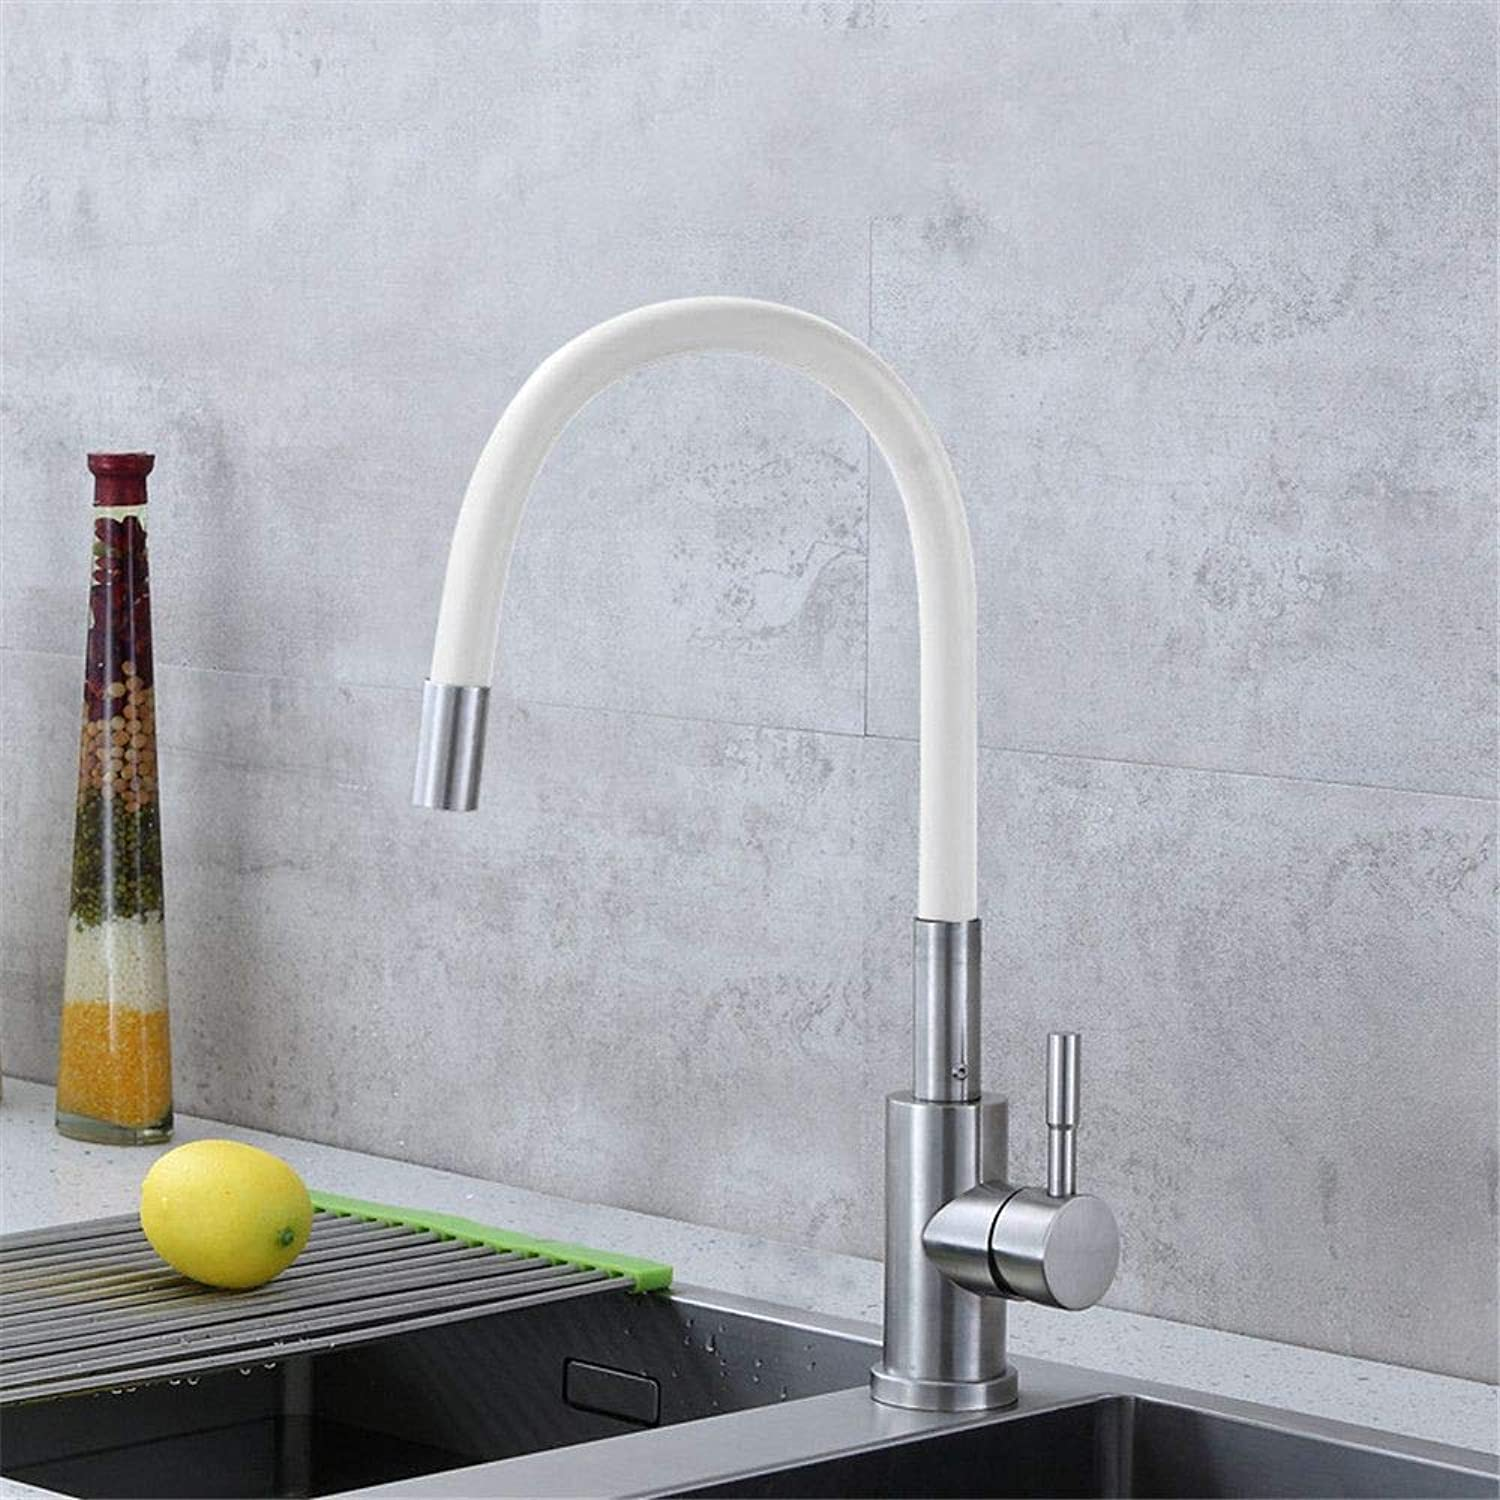 304 Stainless Steel Kitchen Faucet Cold Water Mixer Kitchen Sink Faucet redary Universal color Tube Single Handle,Gules-White